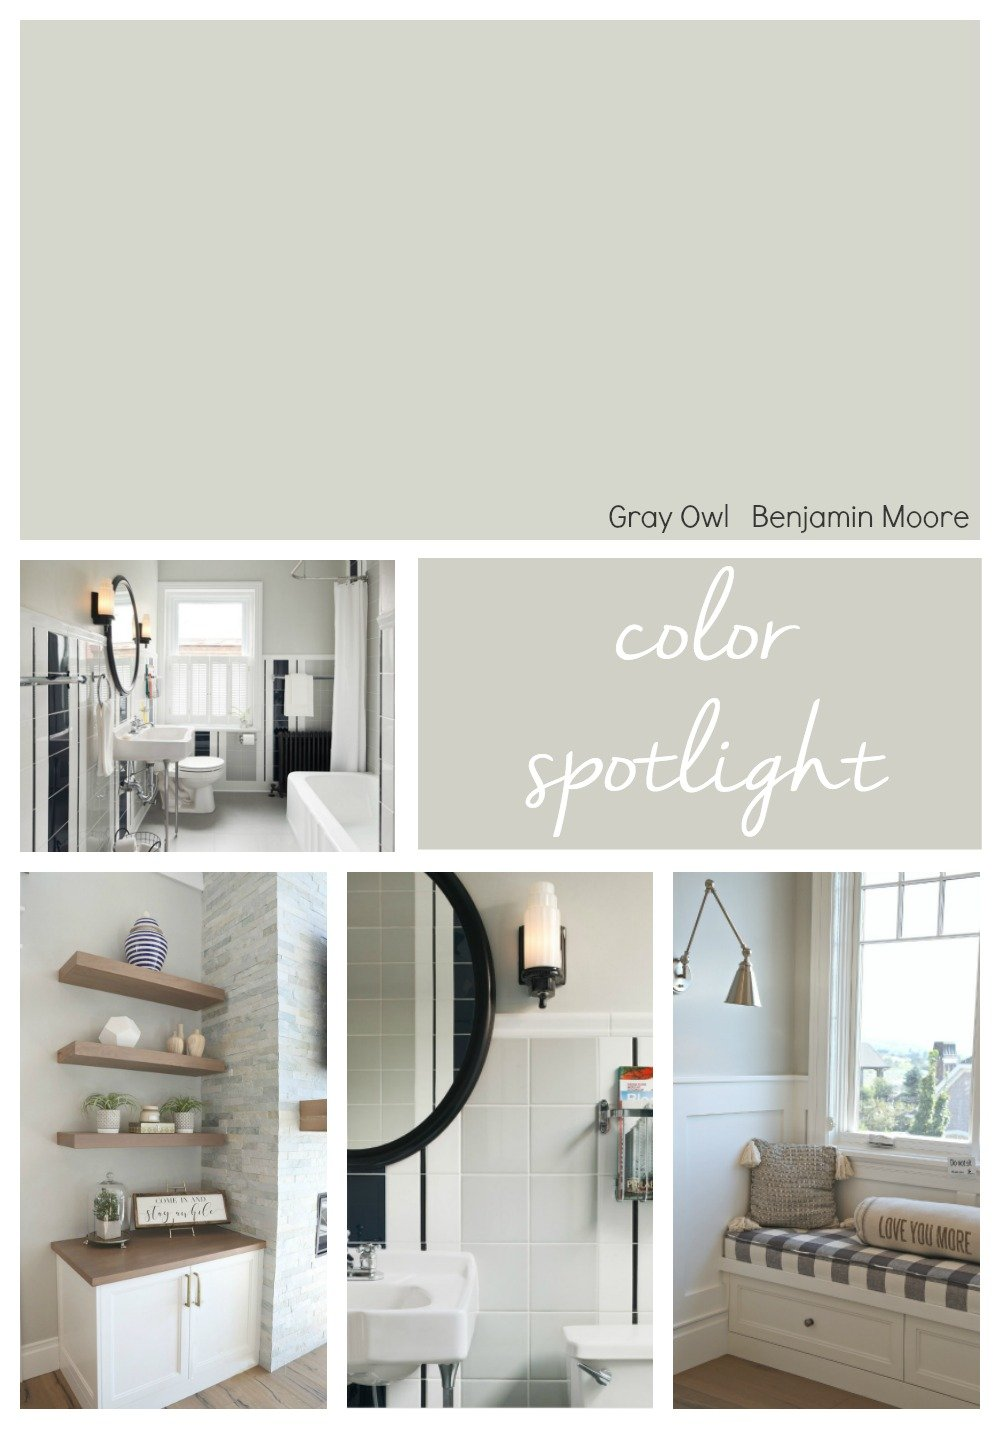 Strange Benjamin Moore Gray Owl Color Spotlight Interior Design Ideas Inamawefileorg